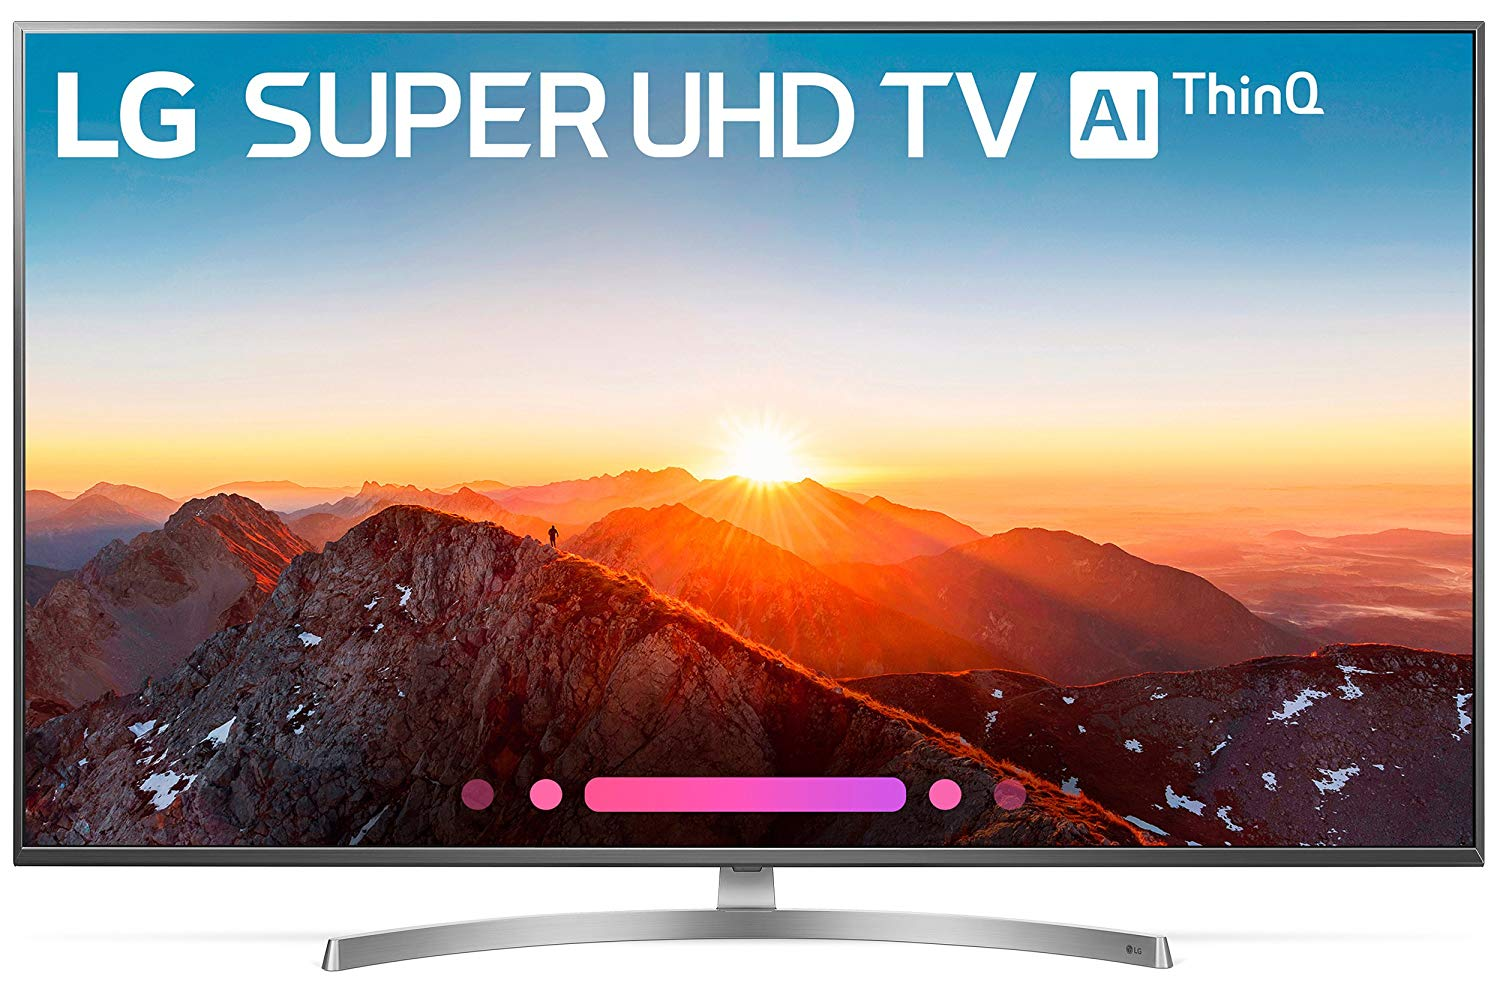 LG Electronics 55SK8000 55-Inch 4K Ultra HD Smart LED TV (2018 Model)